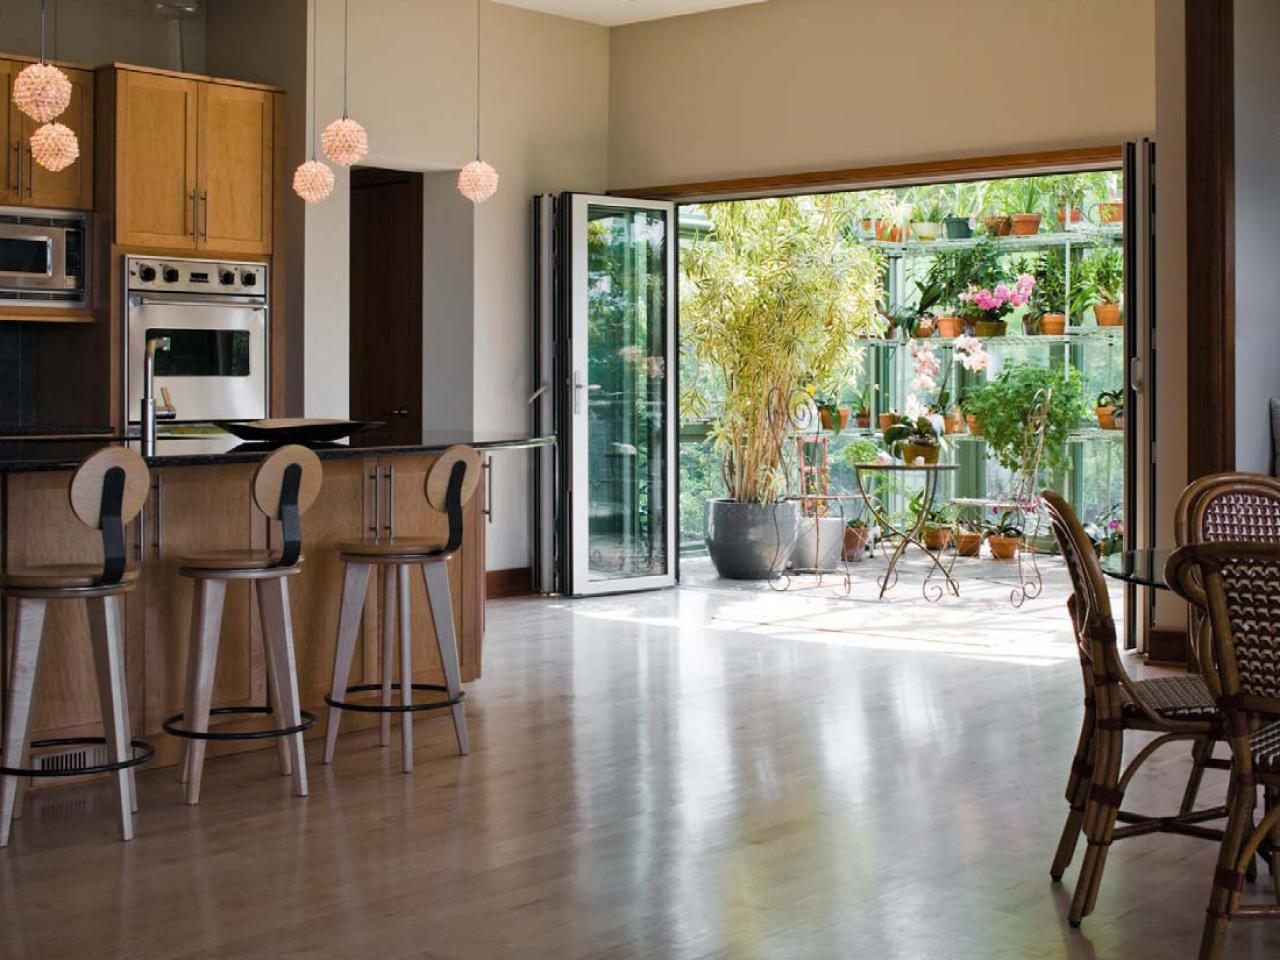 Charmant Modern Open Plan Kitchen With Greenhouse